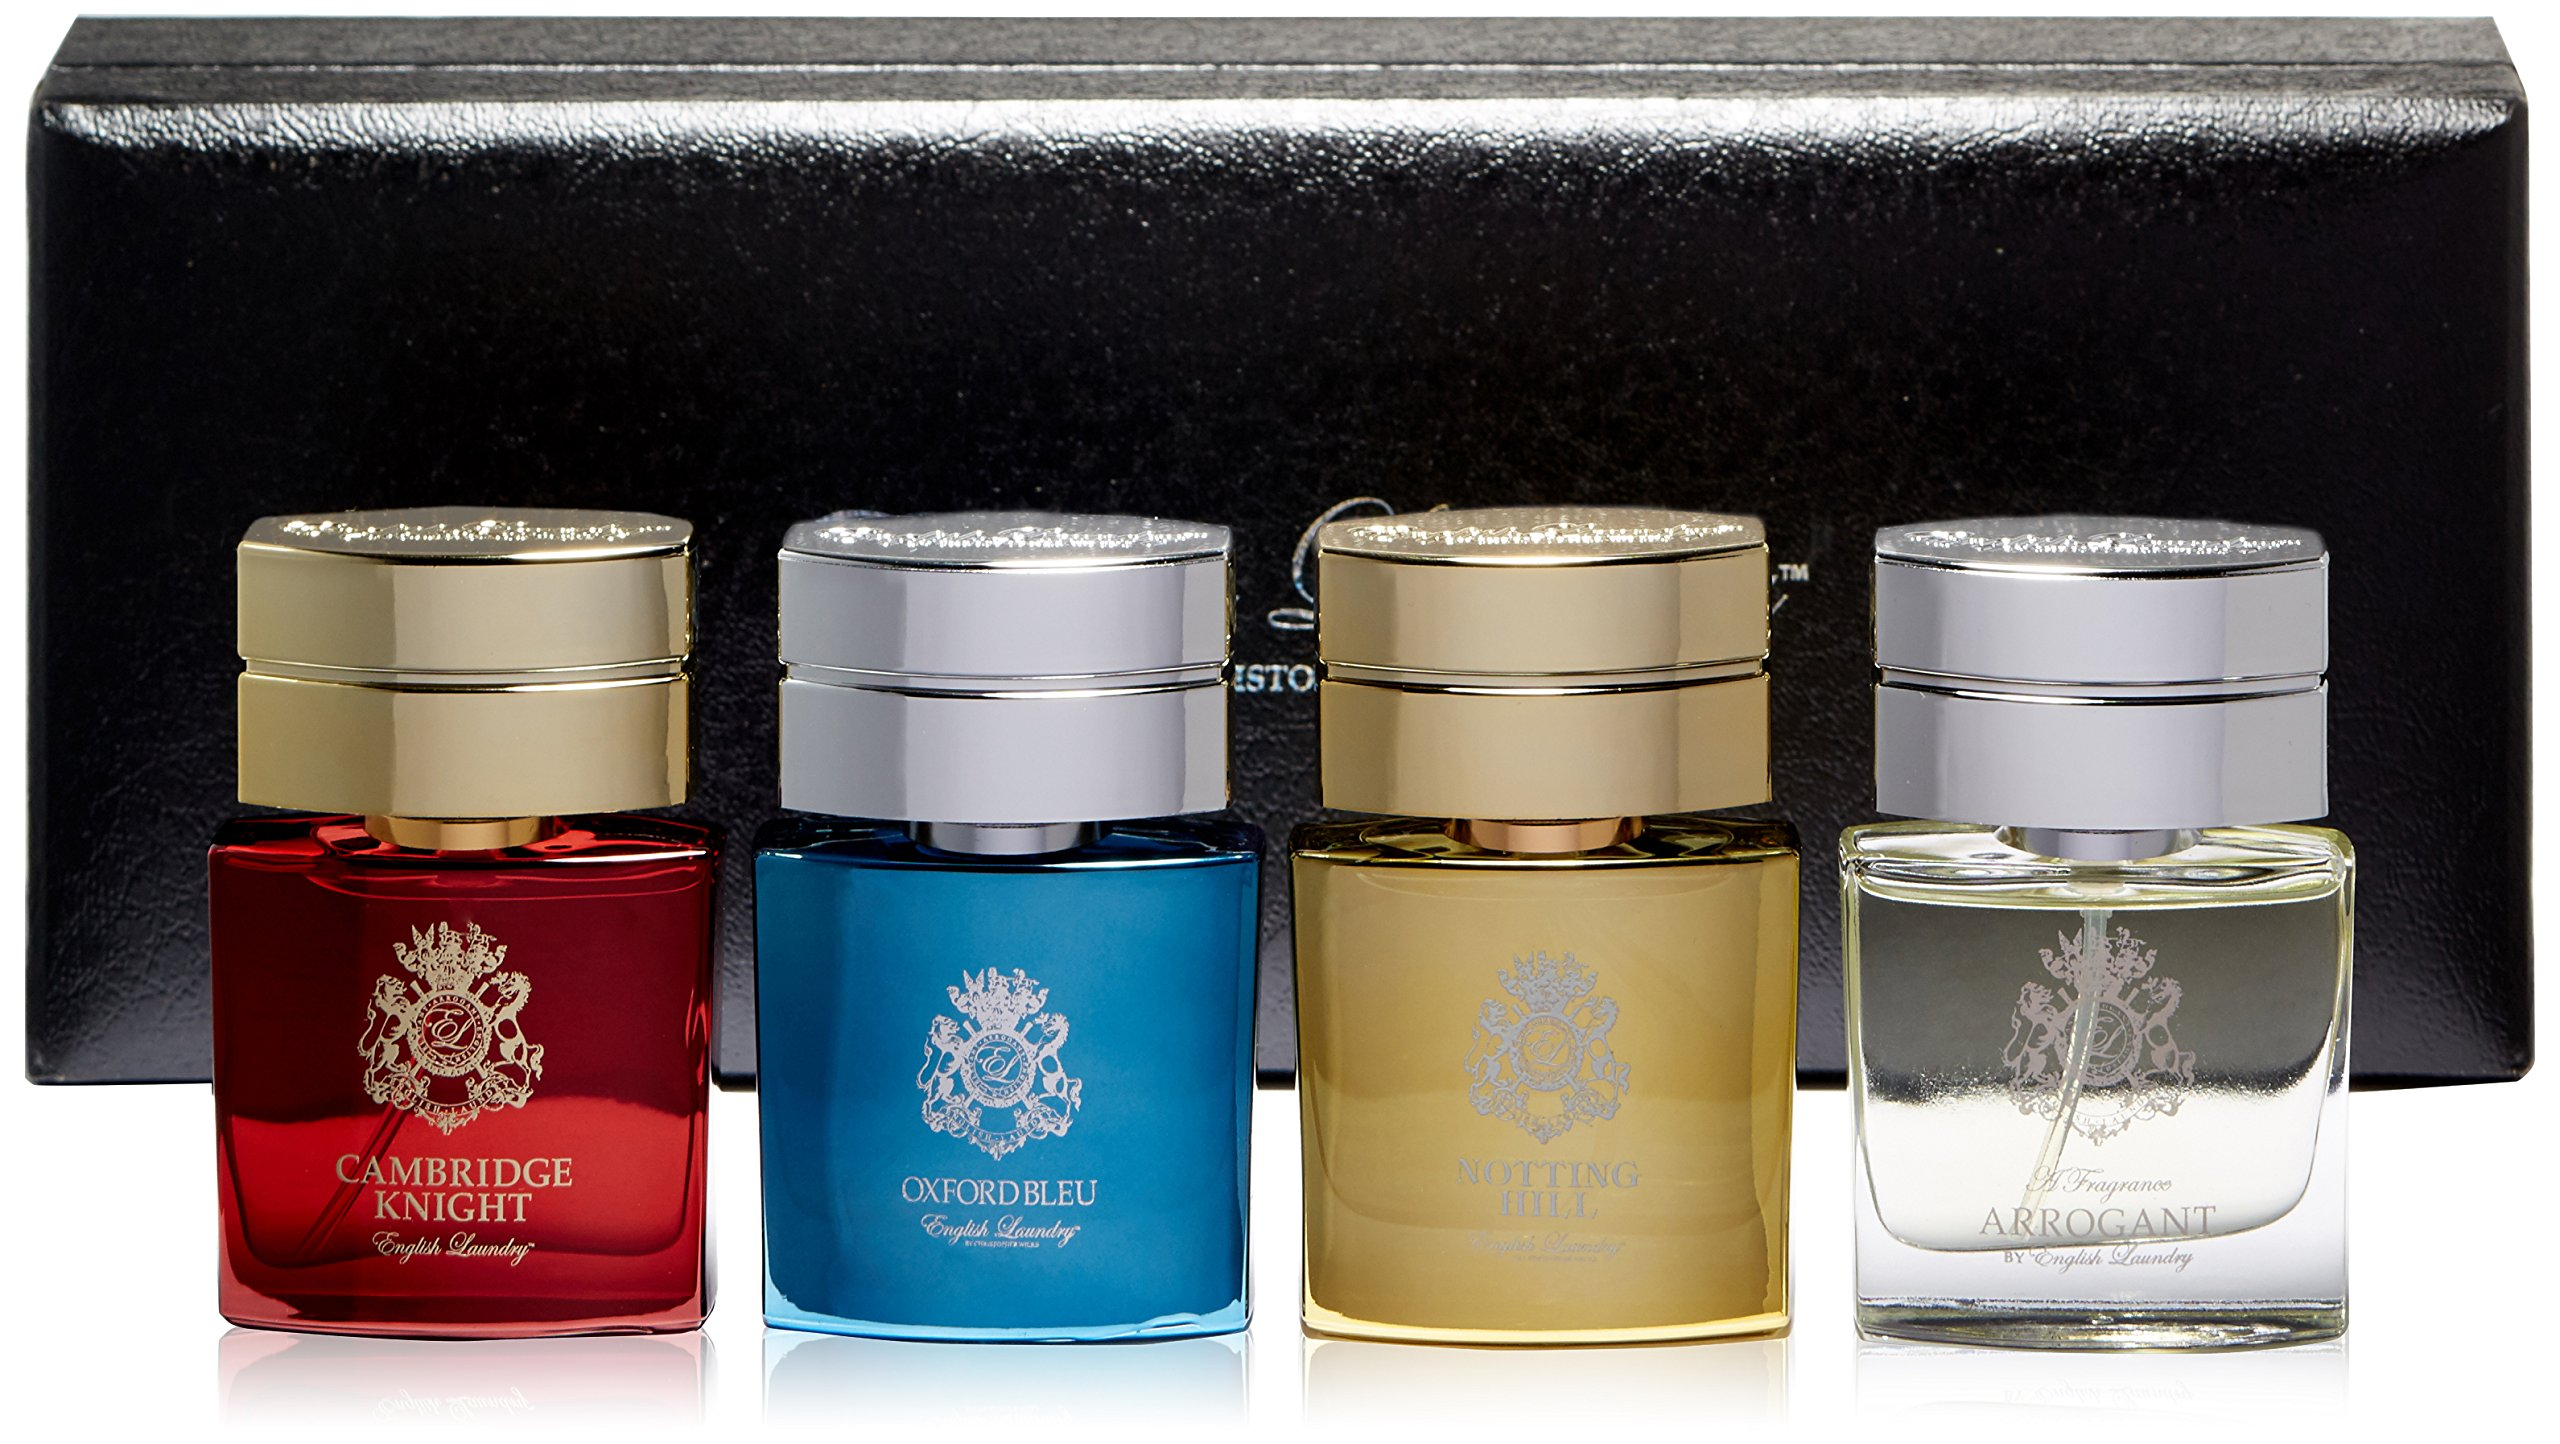 nglish Laundry Men's 4 Piece 20ml Coffret by English Laundry